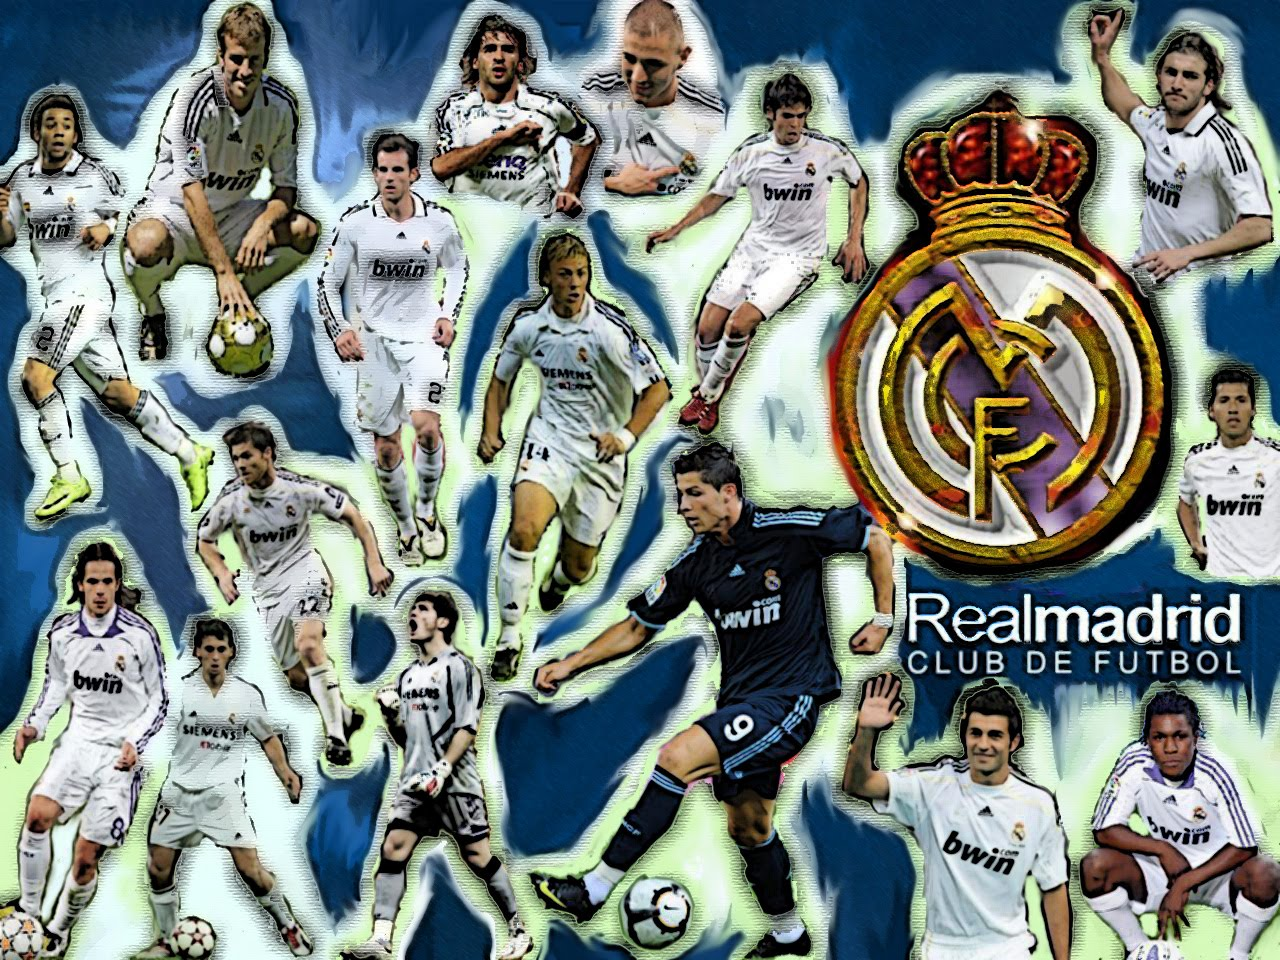 Del Real 3 Real Madrid Real Madrid Real Madrid Real Madrid Real Madrid